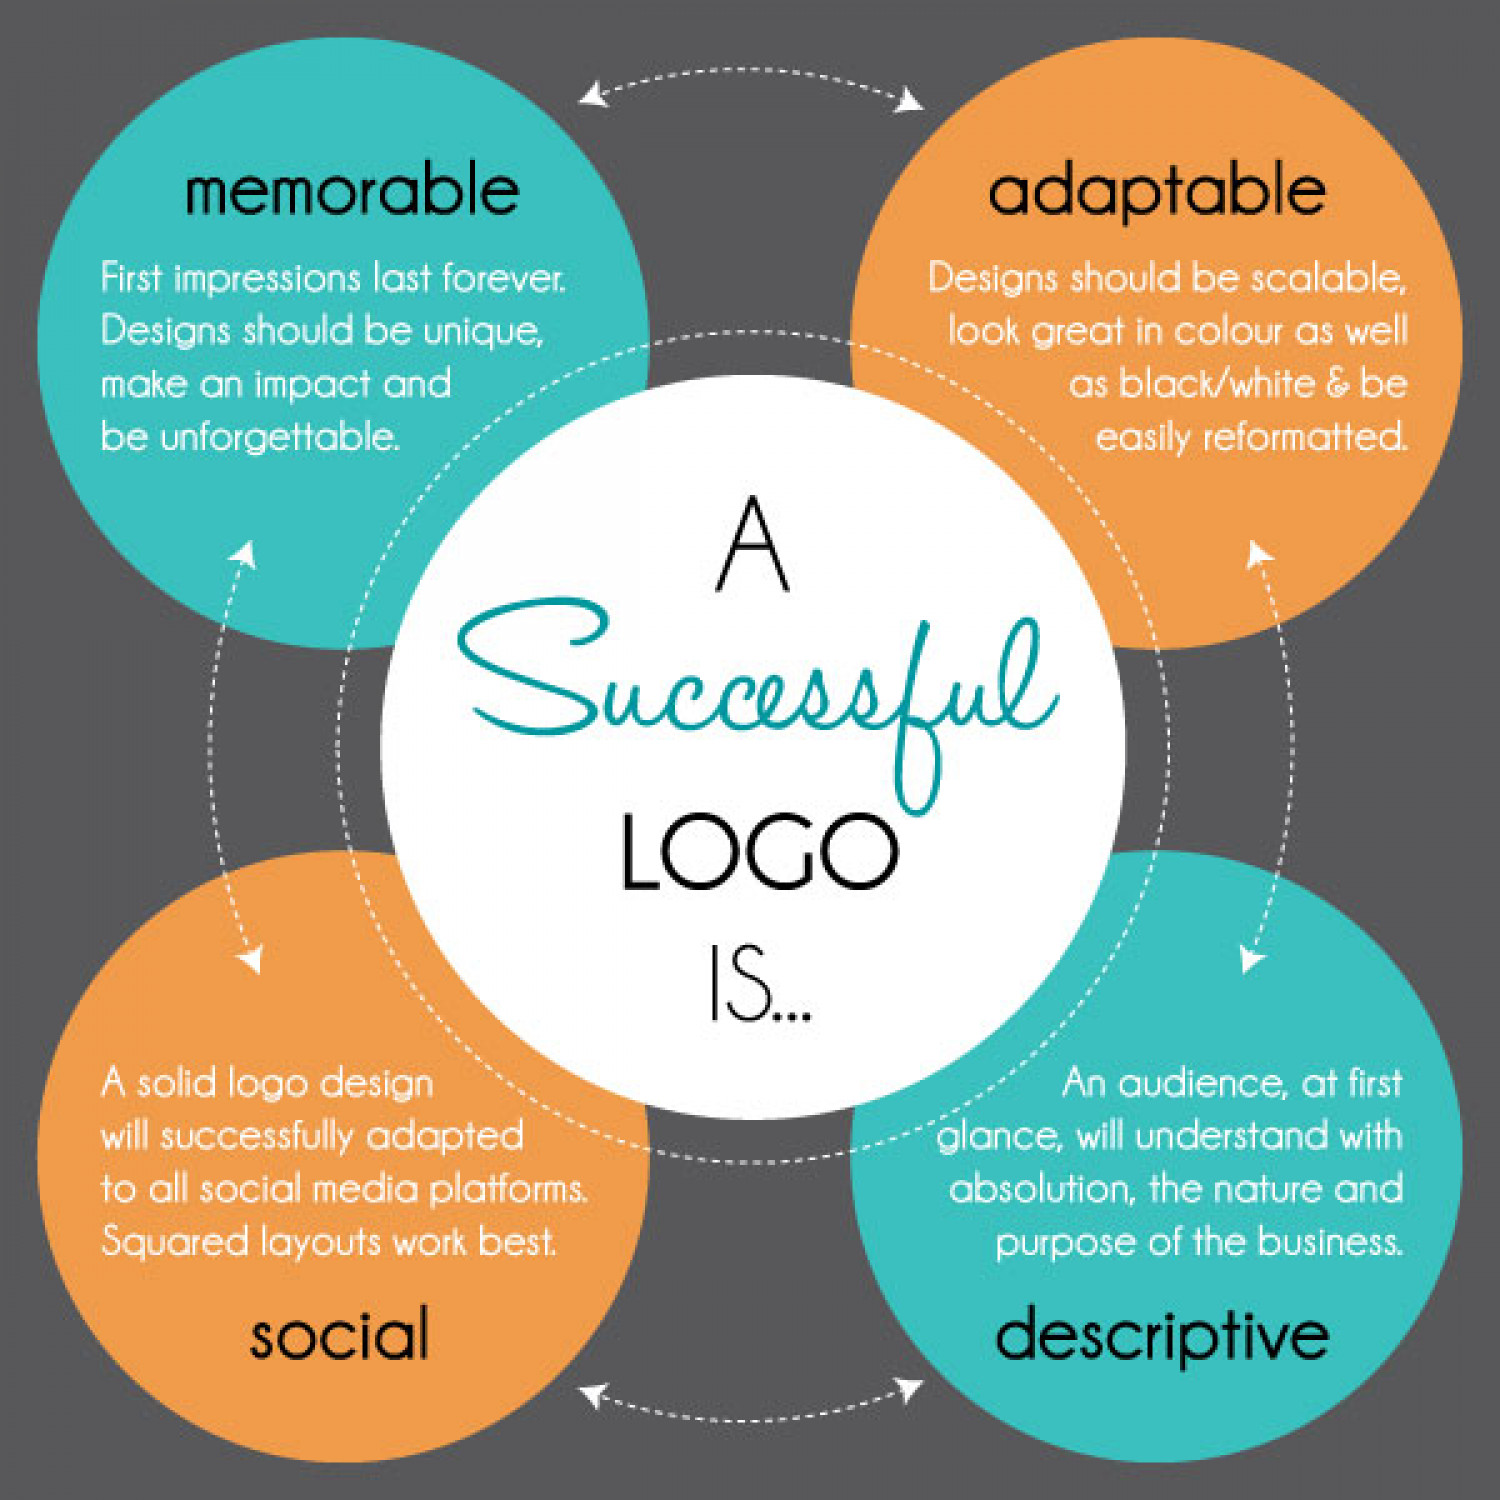 A Successful Logo Design Is… Infographic